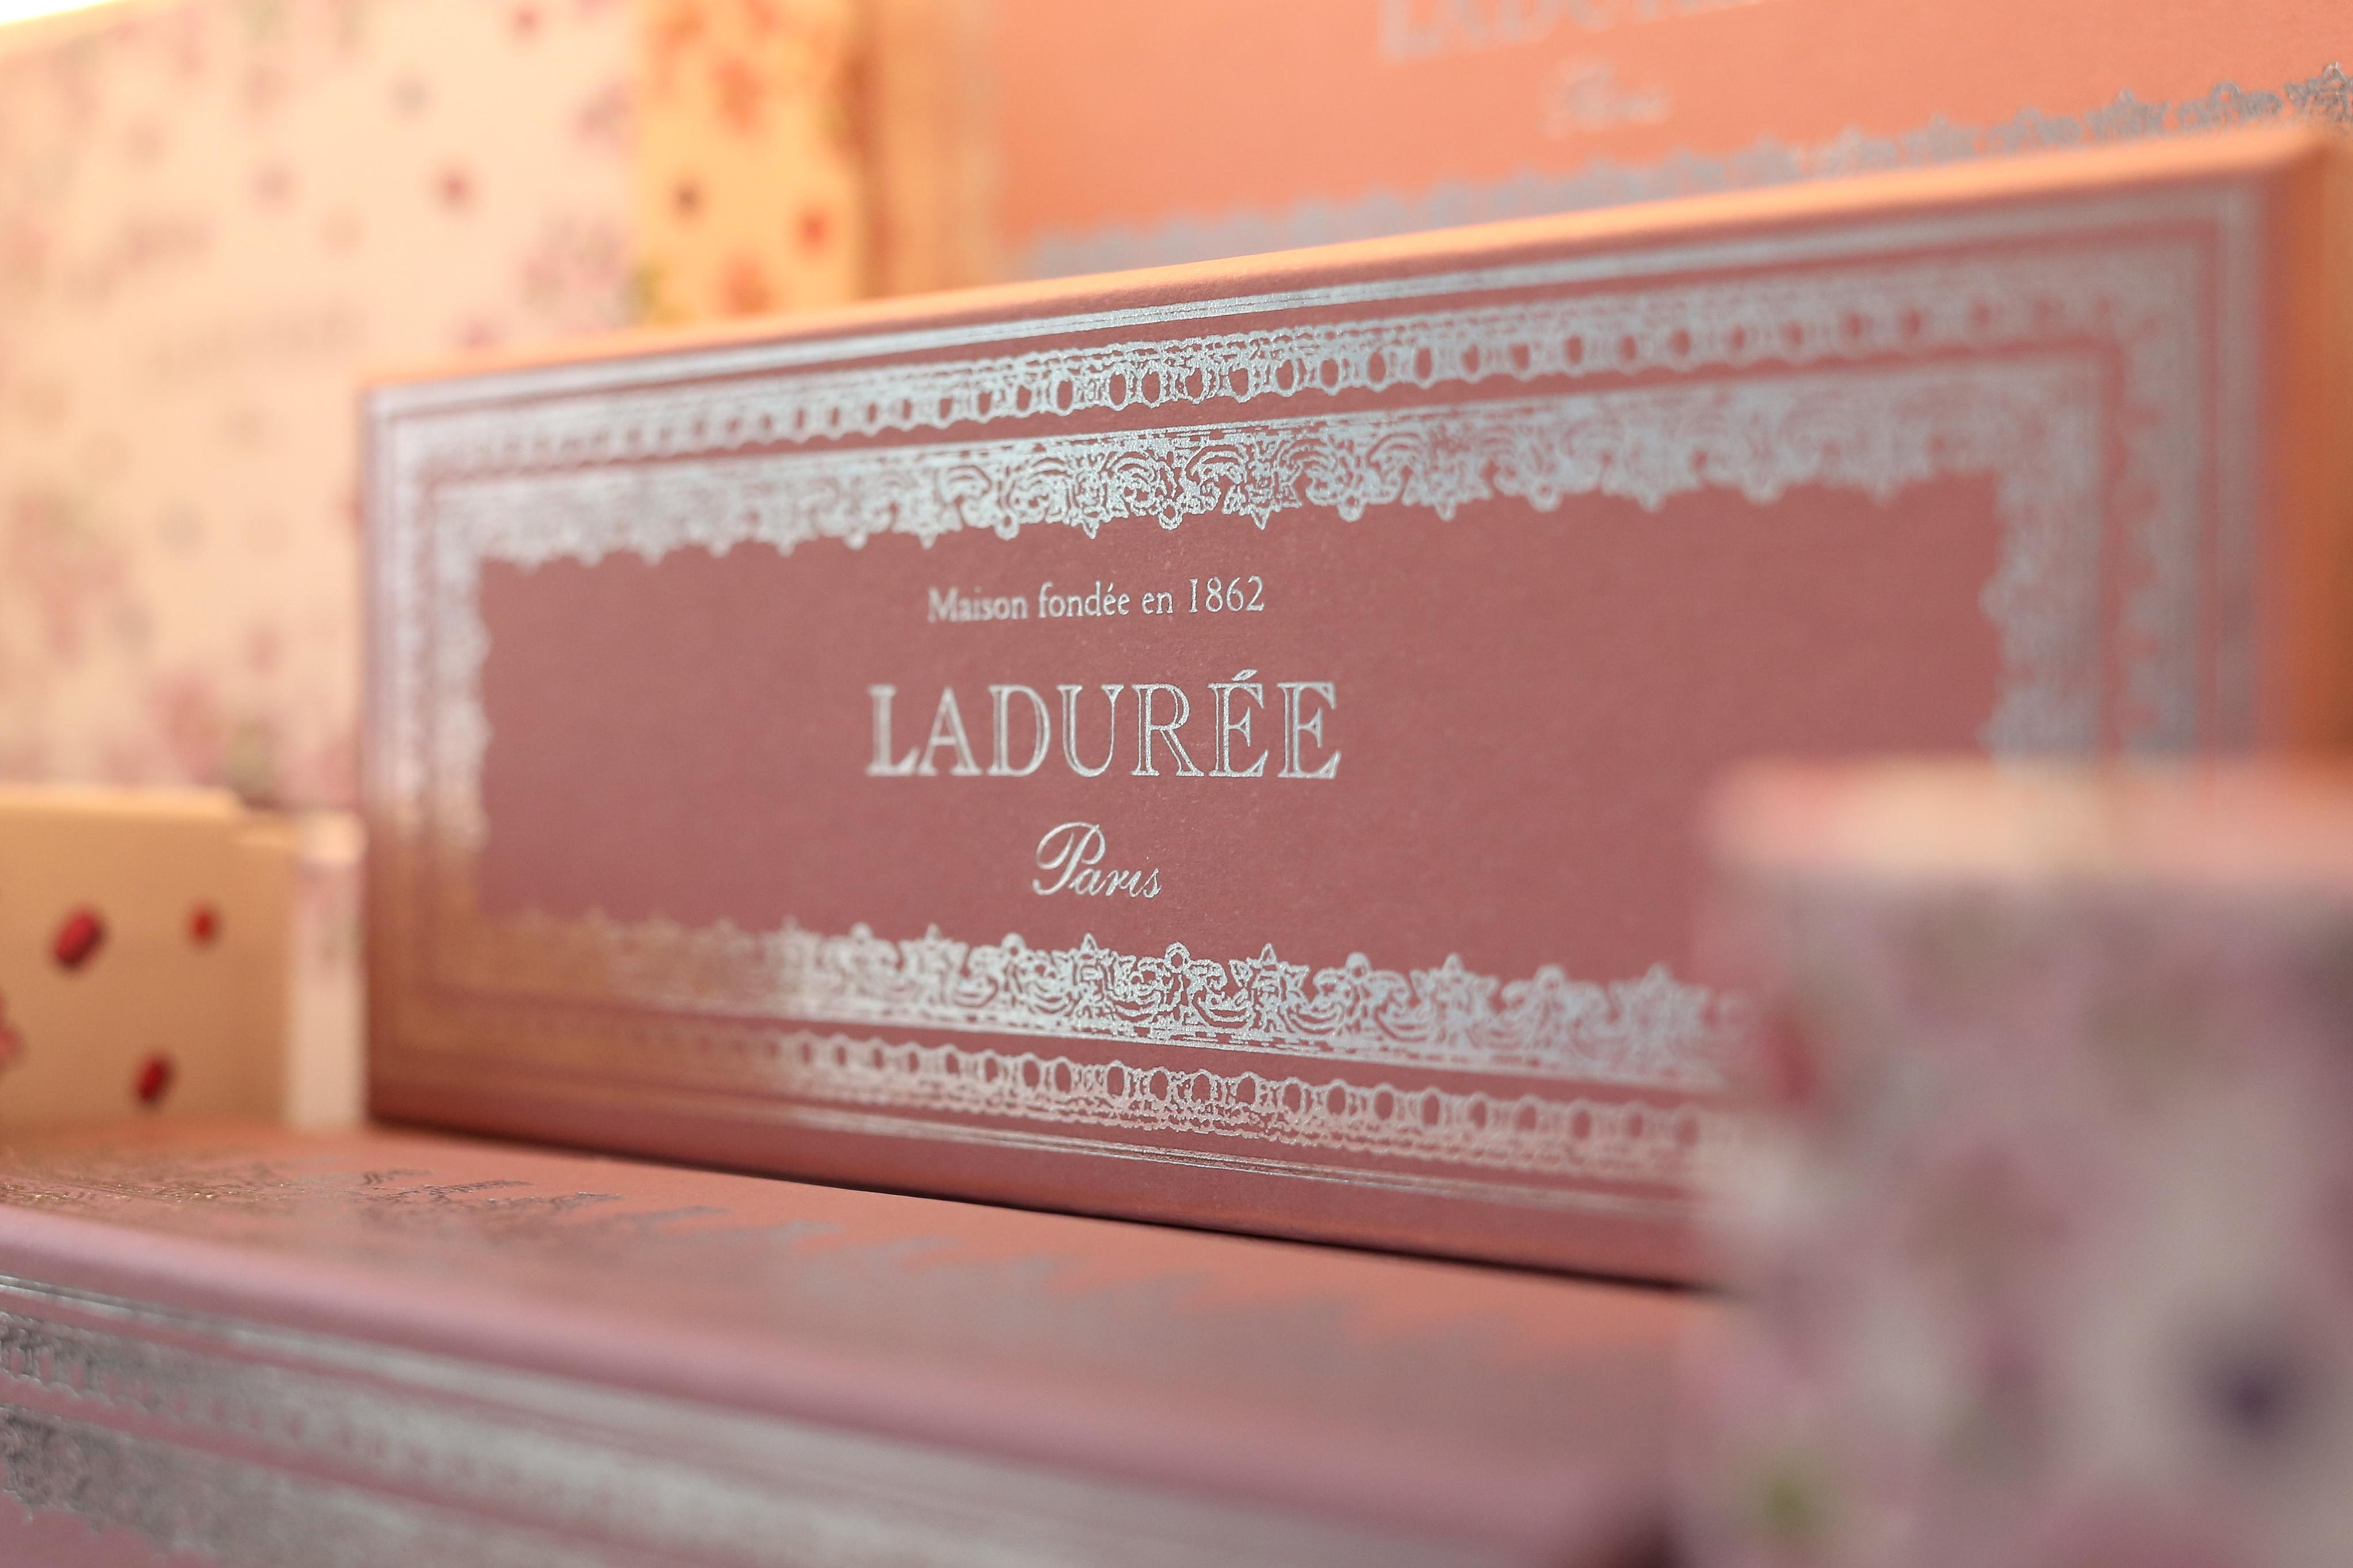 Few things evoke Paris like a delicate box of perfectly baked macarons, but you don't have to buy a plane ticket to experience France with the arrival of Ladurée in Georgetown. The legendary Parisian institution opens next week, but the opening party was trés chic. (Amanda Andrade-Rhoades/DC Refined)